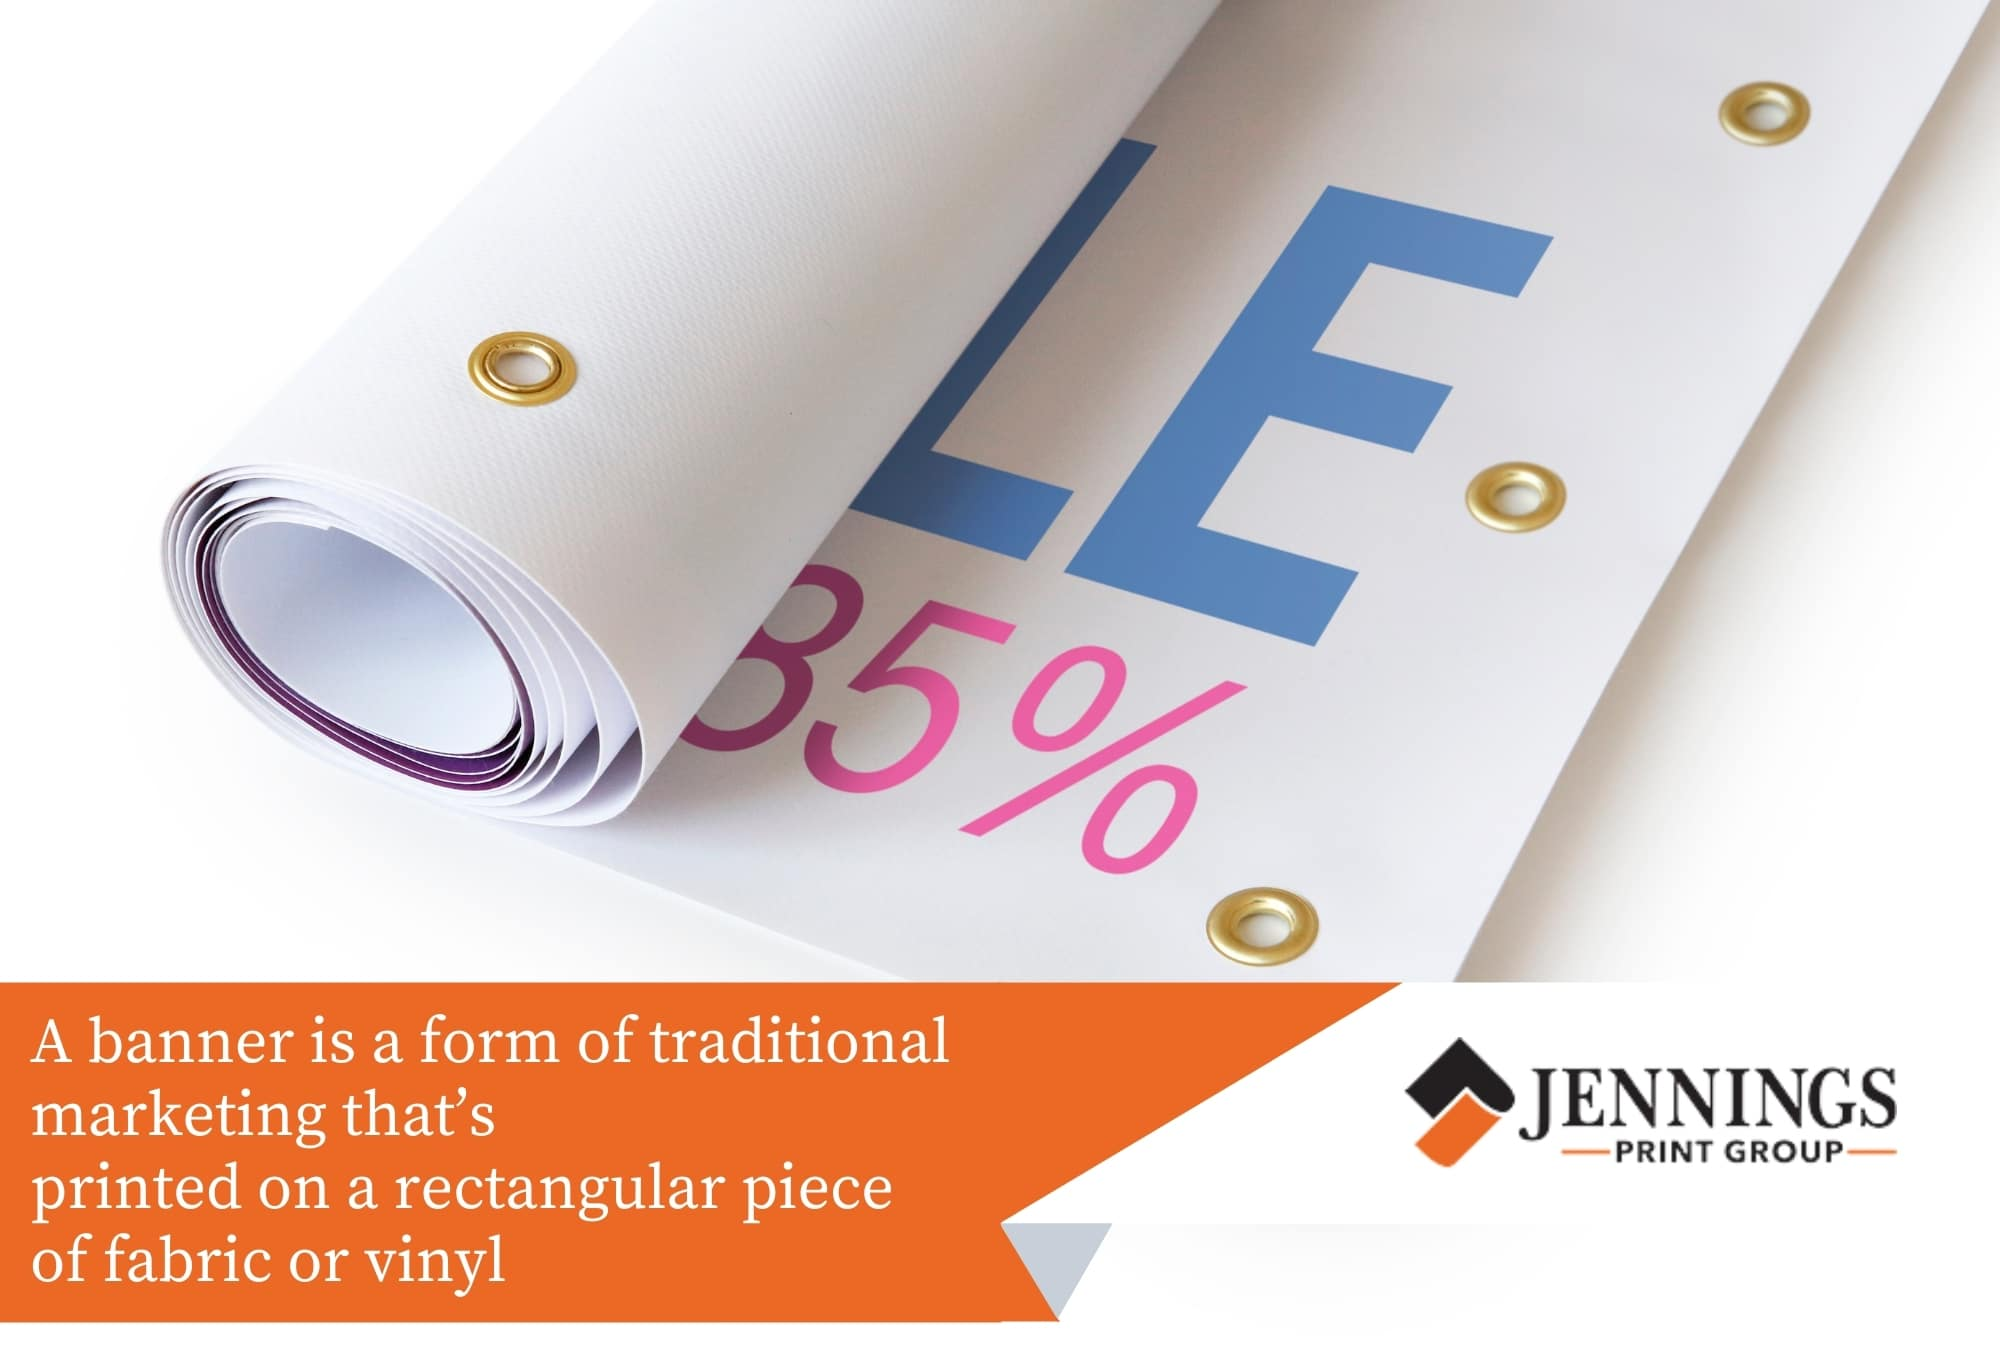 A banner is a form of traditional marketing